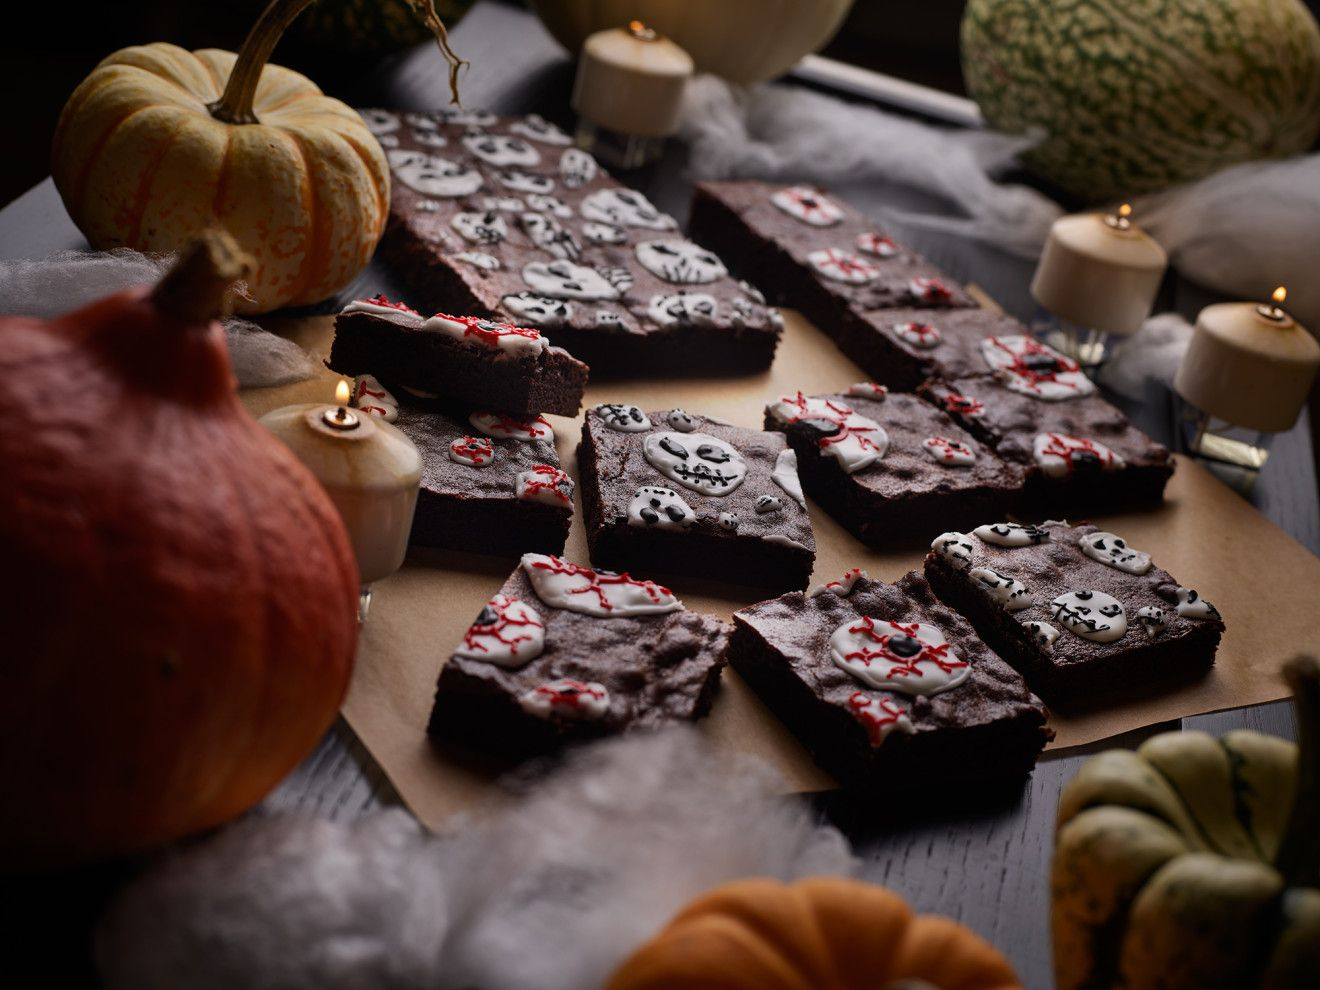 Boo! Chef Elizabeth Blau's 'Chilling' Brownies Are Perfect for Halloween #halloweenbrownies